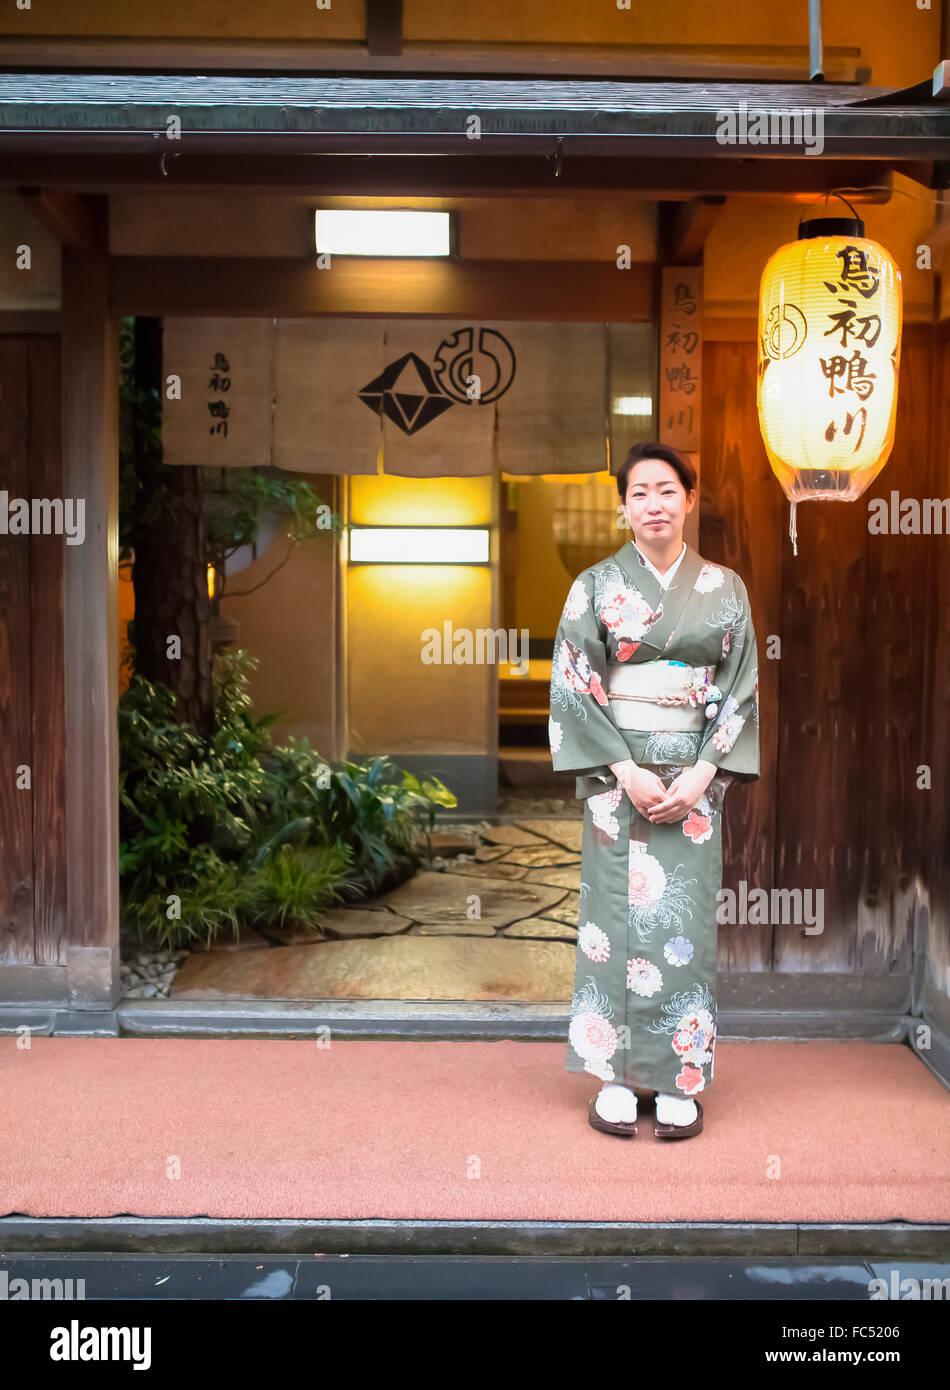 A Japanese lady stands at the entrance door of a Japanese hotel to welcome guests. - Stock Image